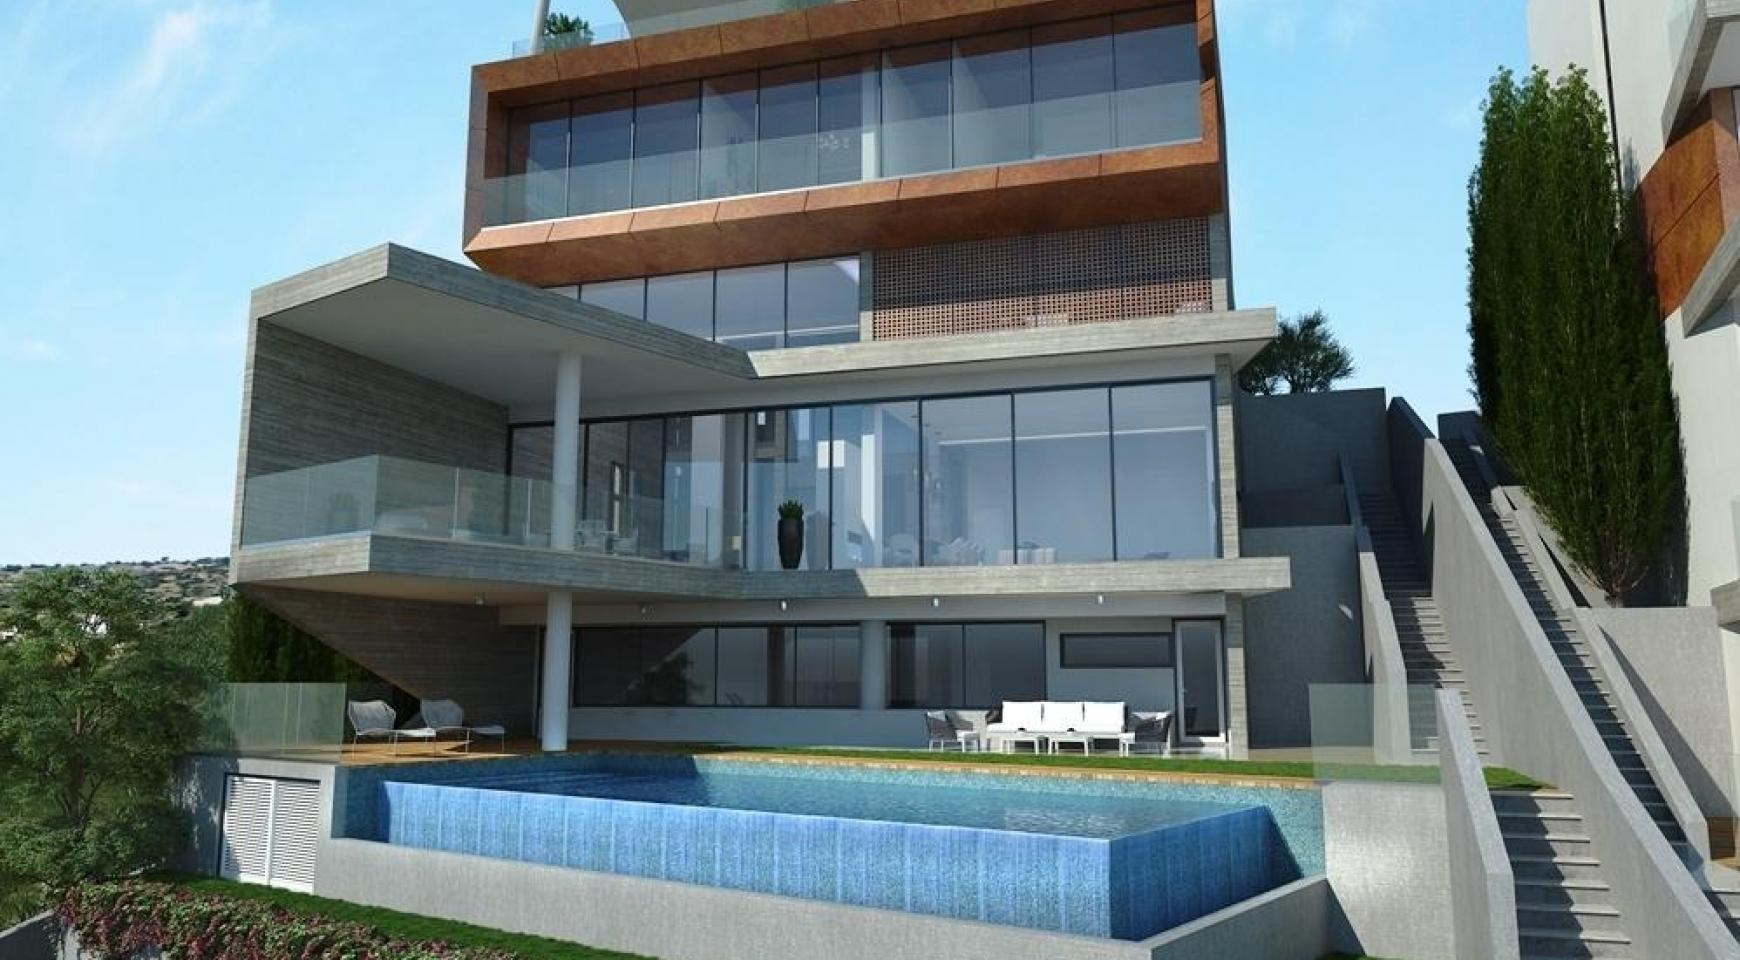 4 Bedroom Villa with Sea View in Agios Tychonas Area - 1